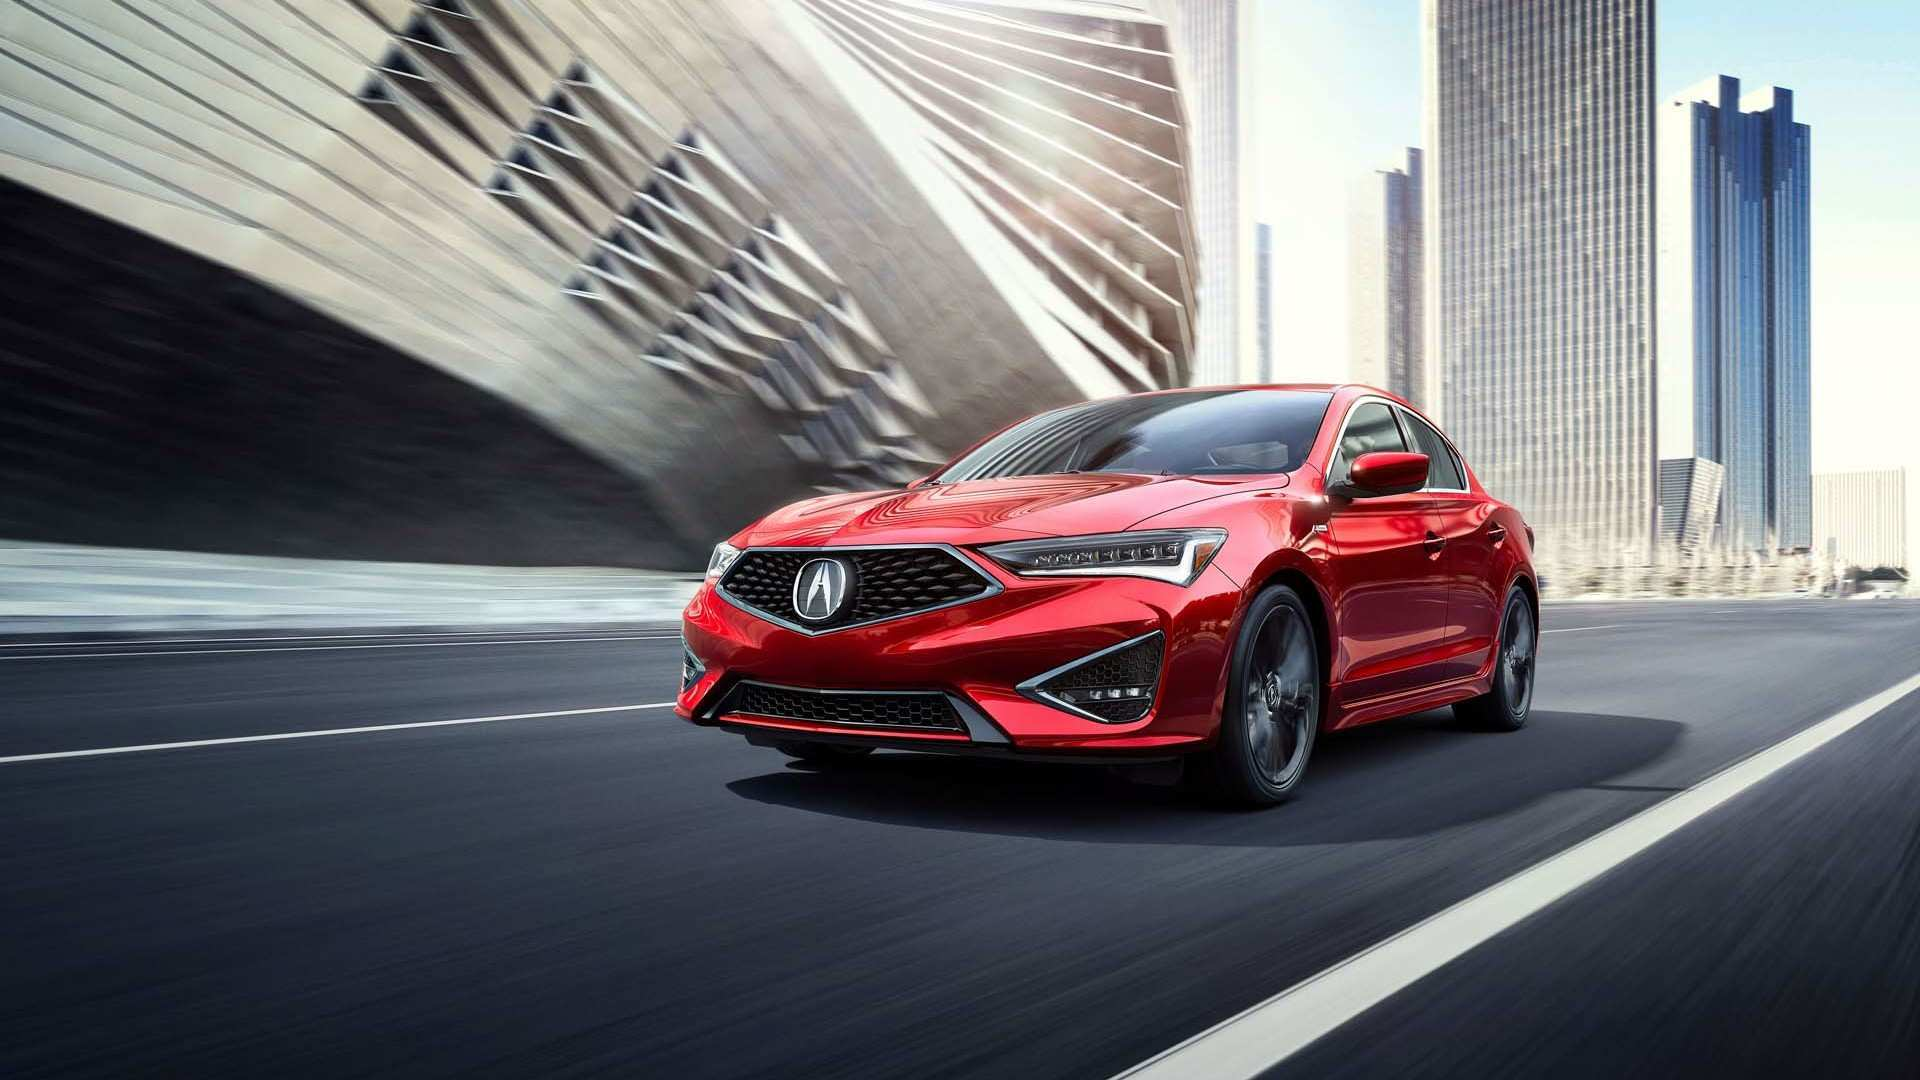 55 Concept of 2019 Acura Ilx Redesign Pricing with 2019 Acura Ilx Redesign